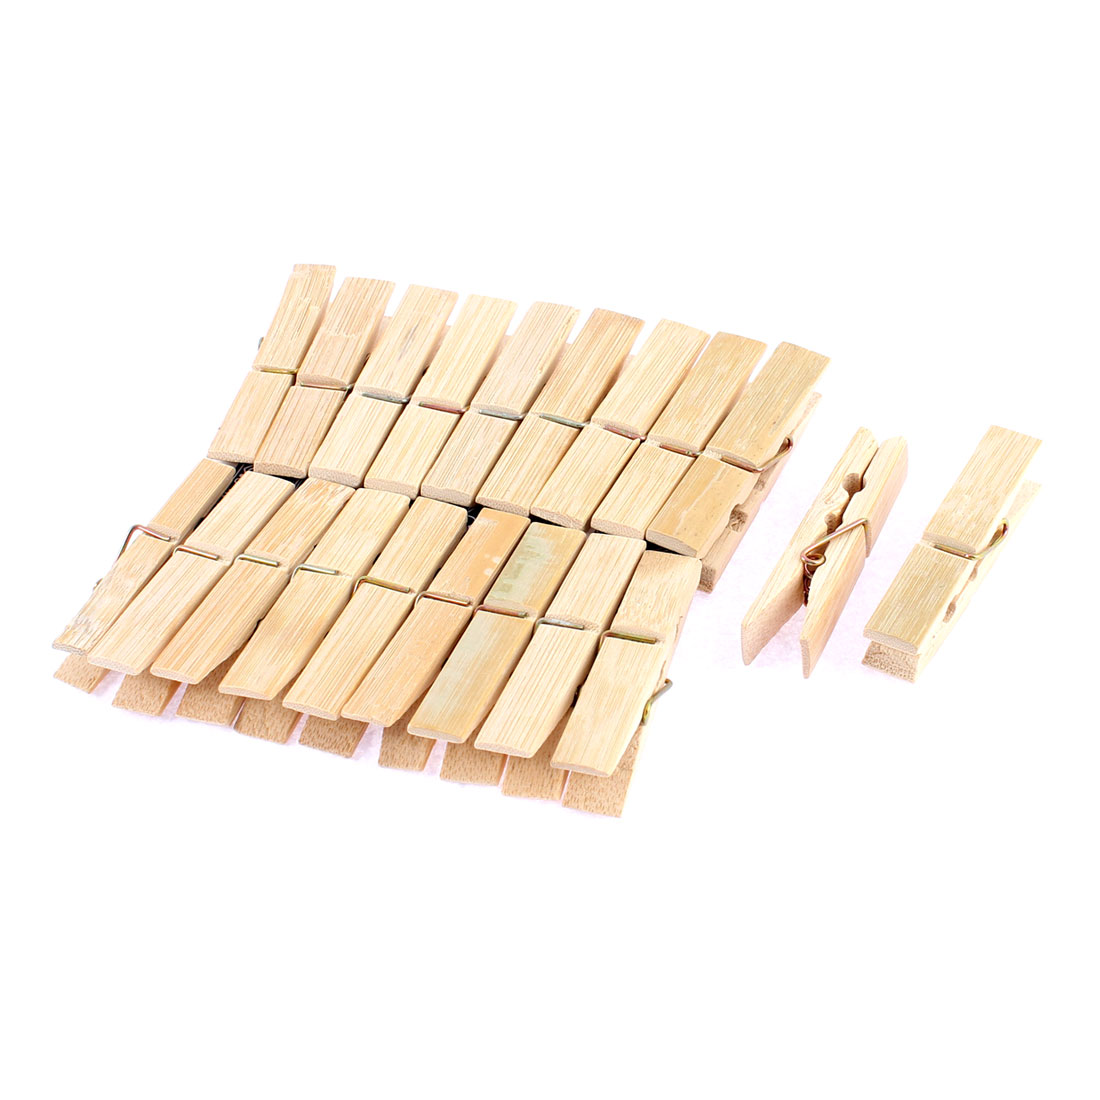 20 Pcs Household Wooden Nonslip Multipurpose Clothing Clothespins Clips